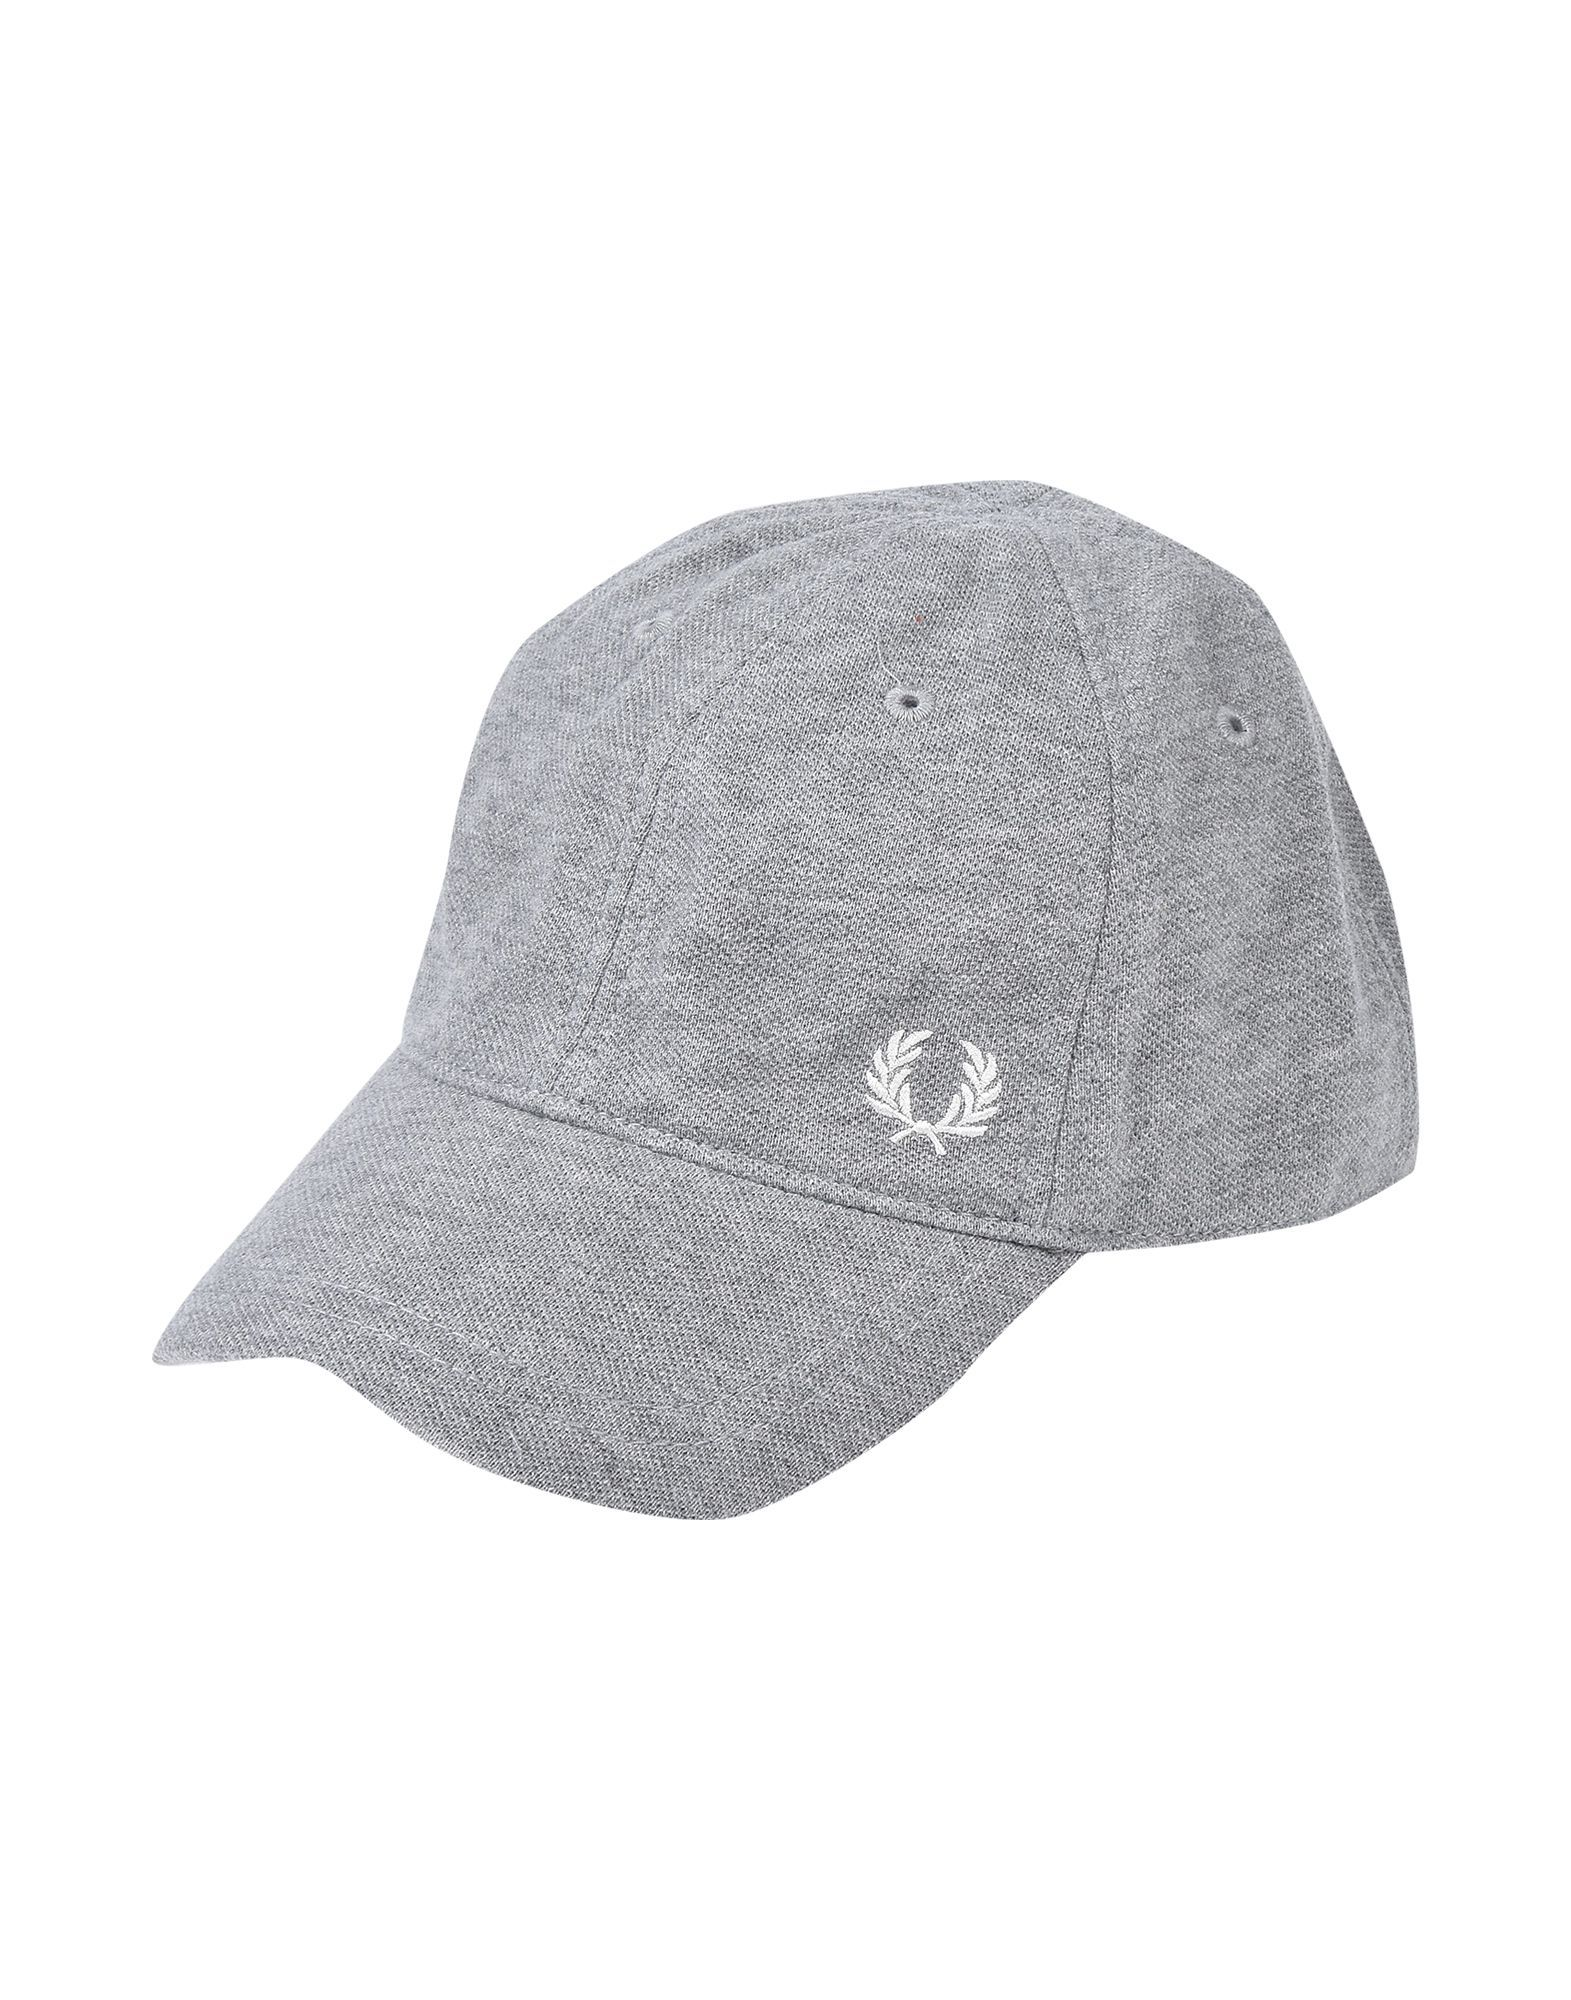 050fc6c4 FRED PERRY HATS. #fredperry | Fred Perry in 2019 | Fred perry hat ...